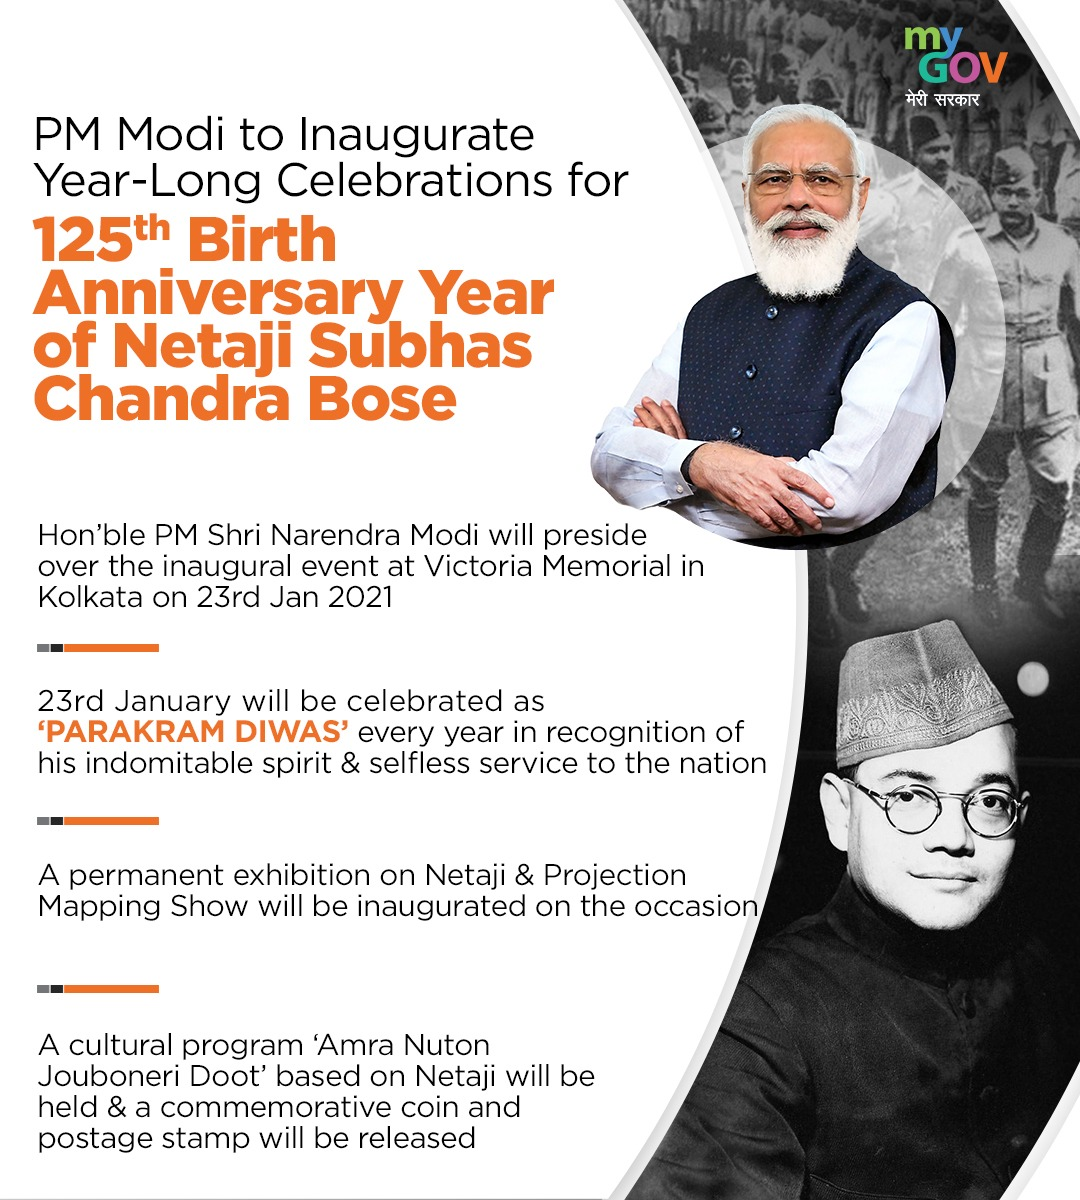 Hon'ble PM @NarendraModi will inaugurate the #ParakramDivas, a year-long celebration to mark the 125th #SubashChandraBoseJayanti. The event will be observed each year in recognition of #netajisubashchandrabose's indomitable spirit and selfless service to the nation.